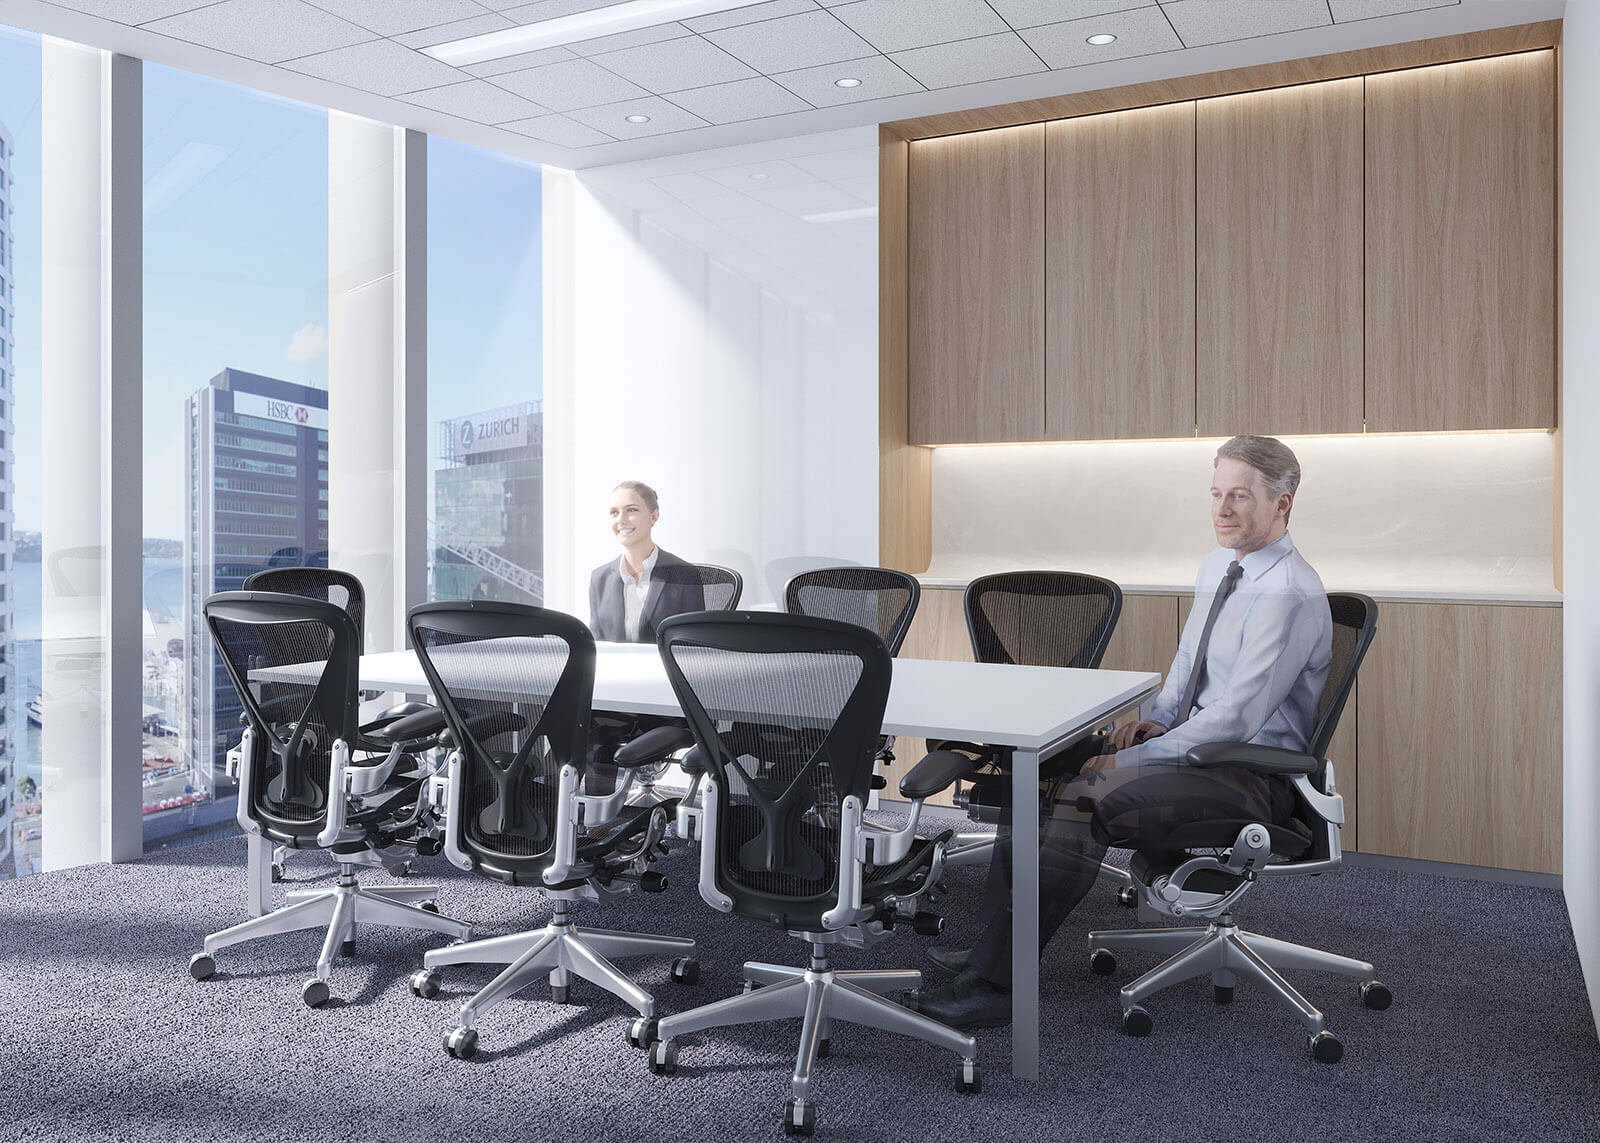 Responding to contemporary workplace requirements